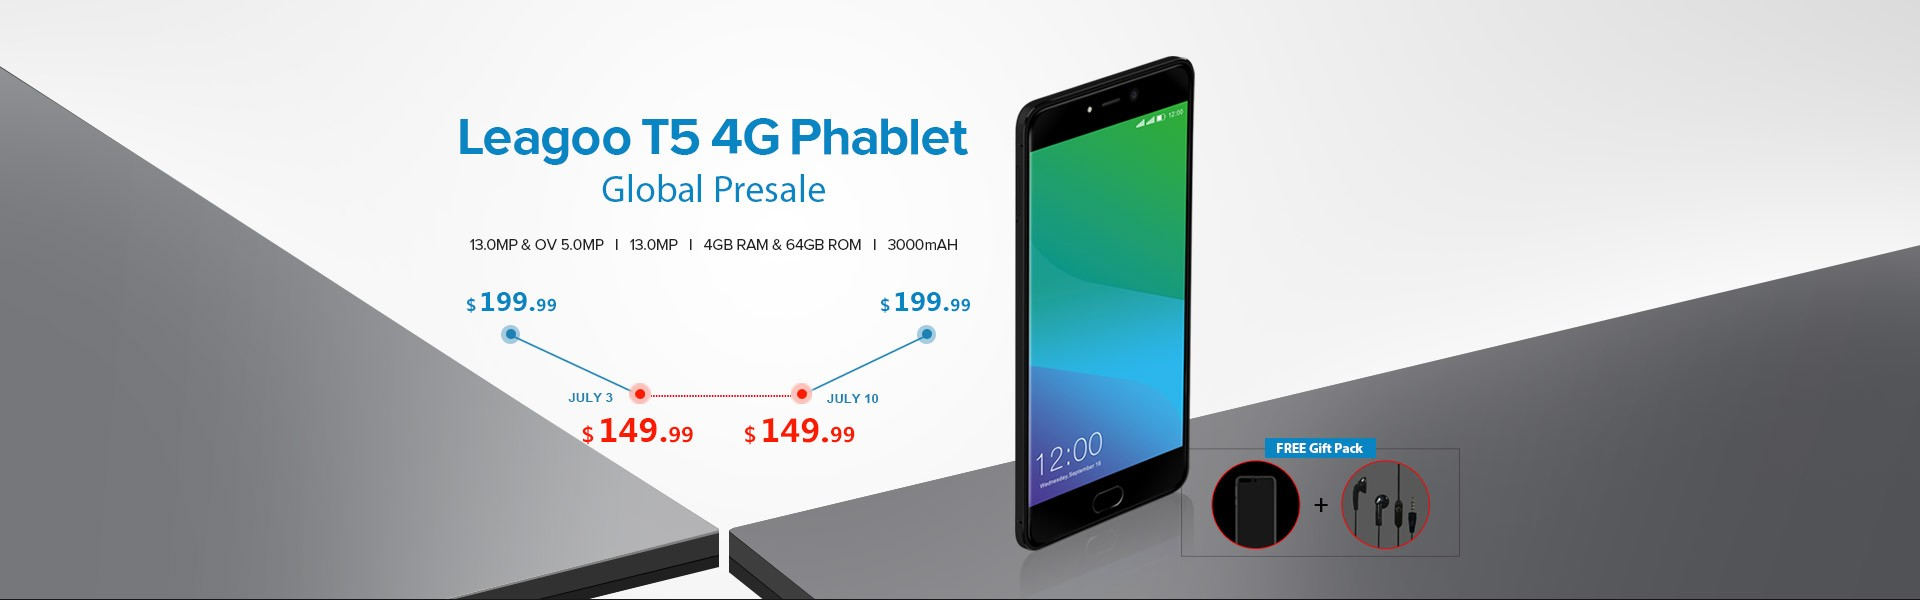 The 2017 Top Android 4G Smartphone Leagoo T5 4G Phablet Flash Sale From $149.99